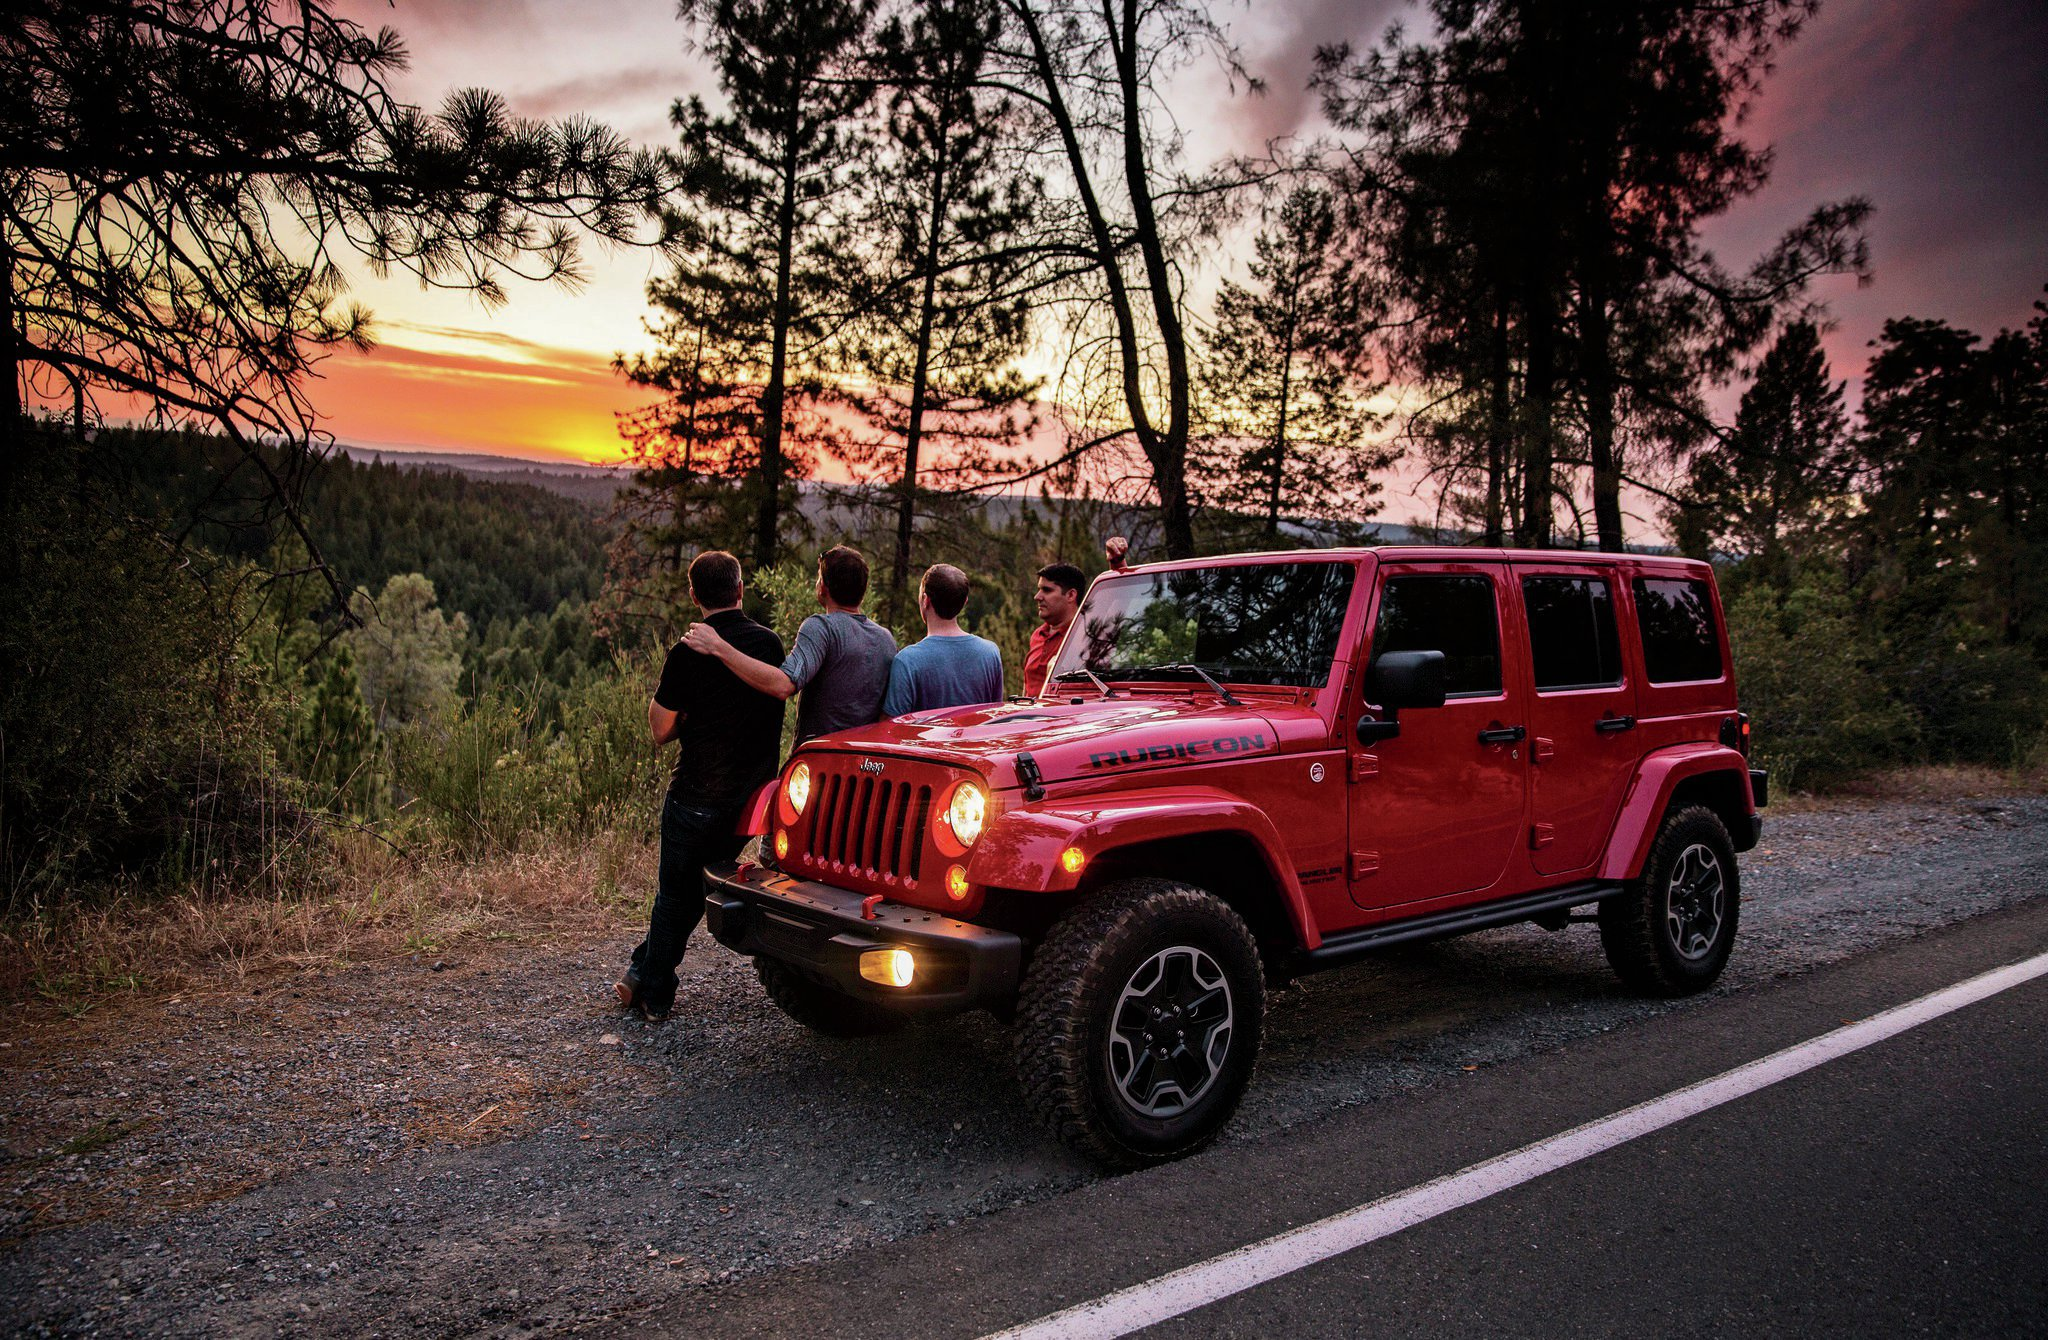 Boys Weekend Jeep Wrangler Rubicon Red Jeep And Sunset